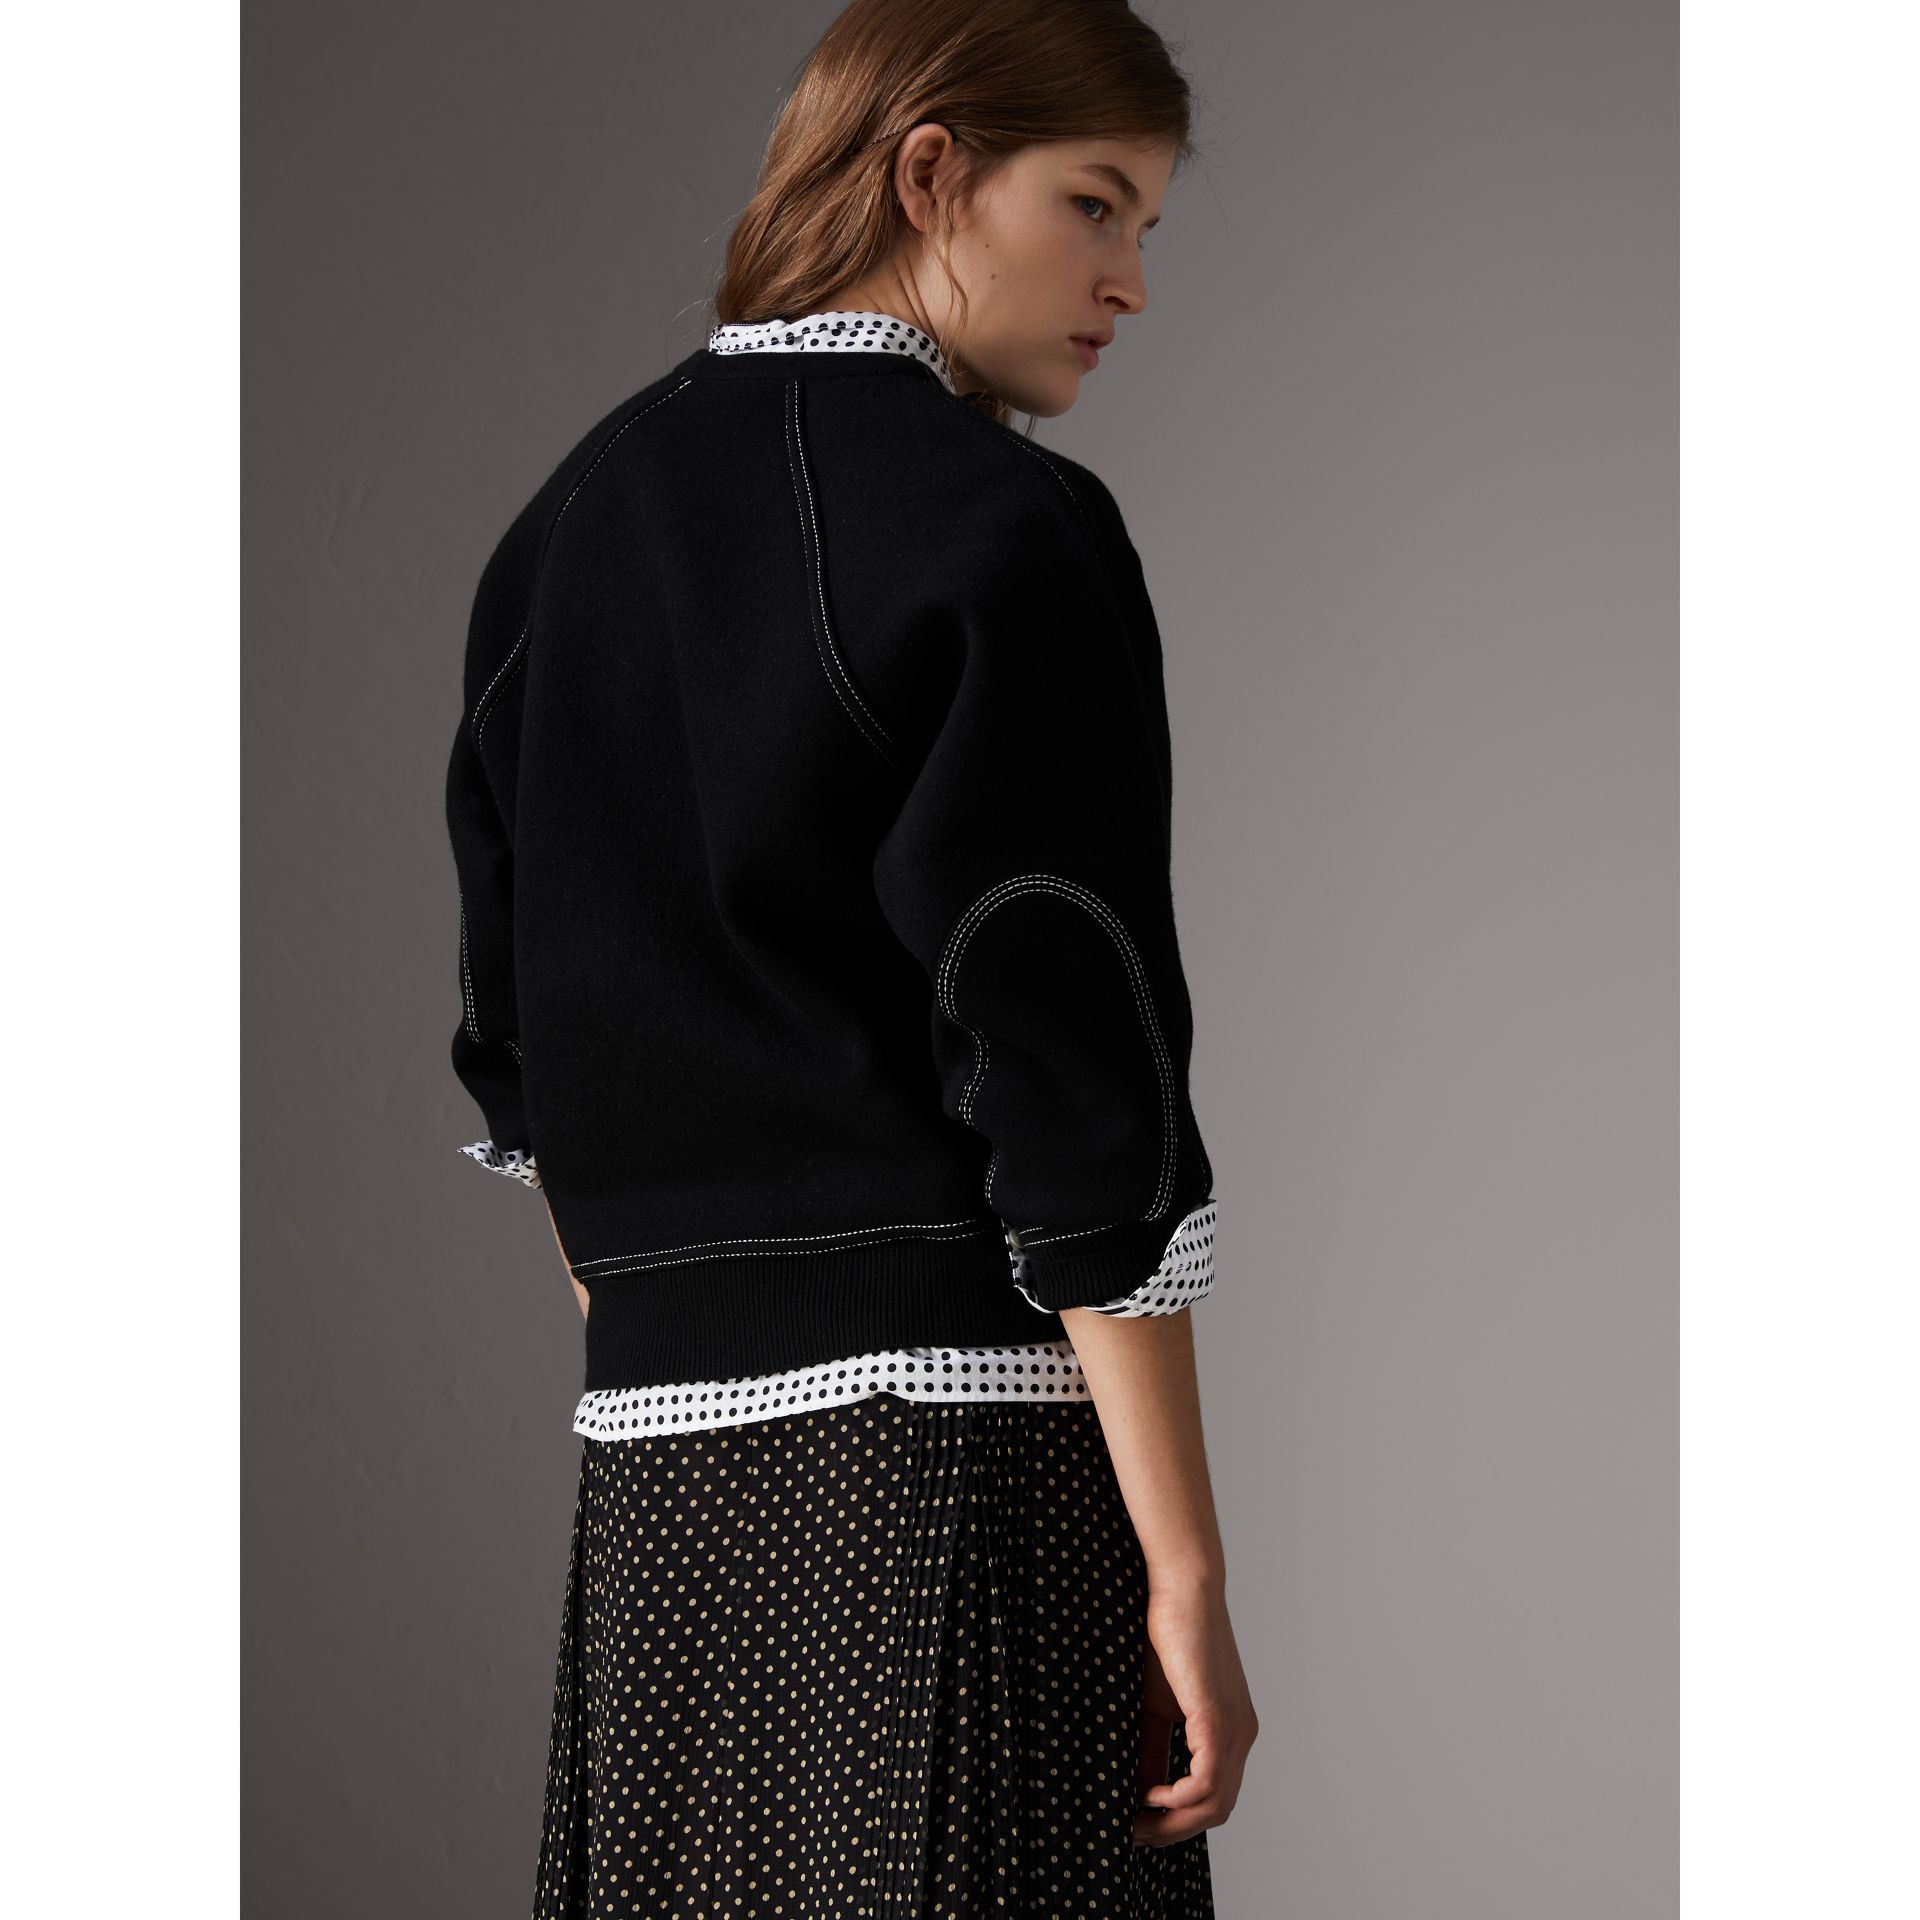 Topstitch Detail Wool Cashmere Blend Sweater in Black - Women | Burberry - gallery image 3